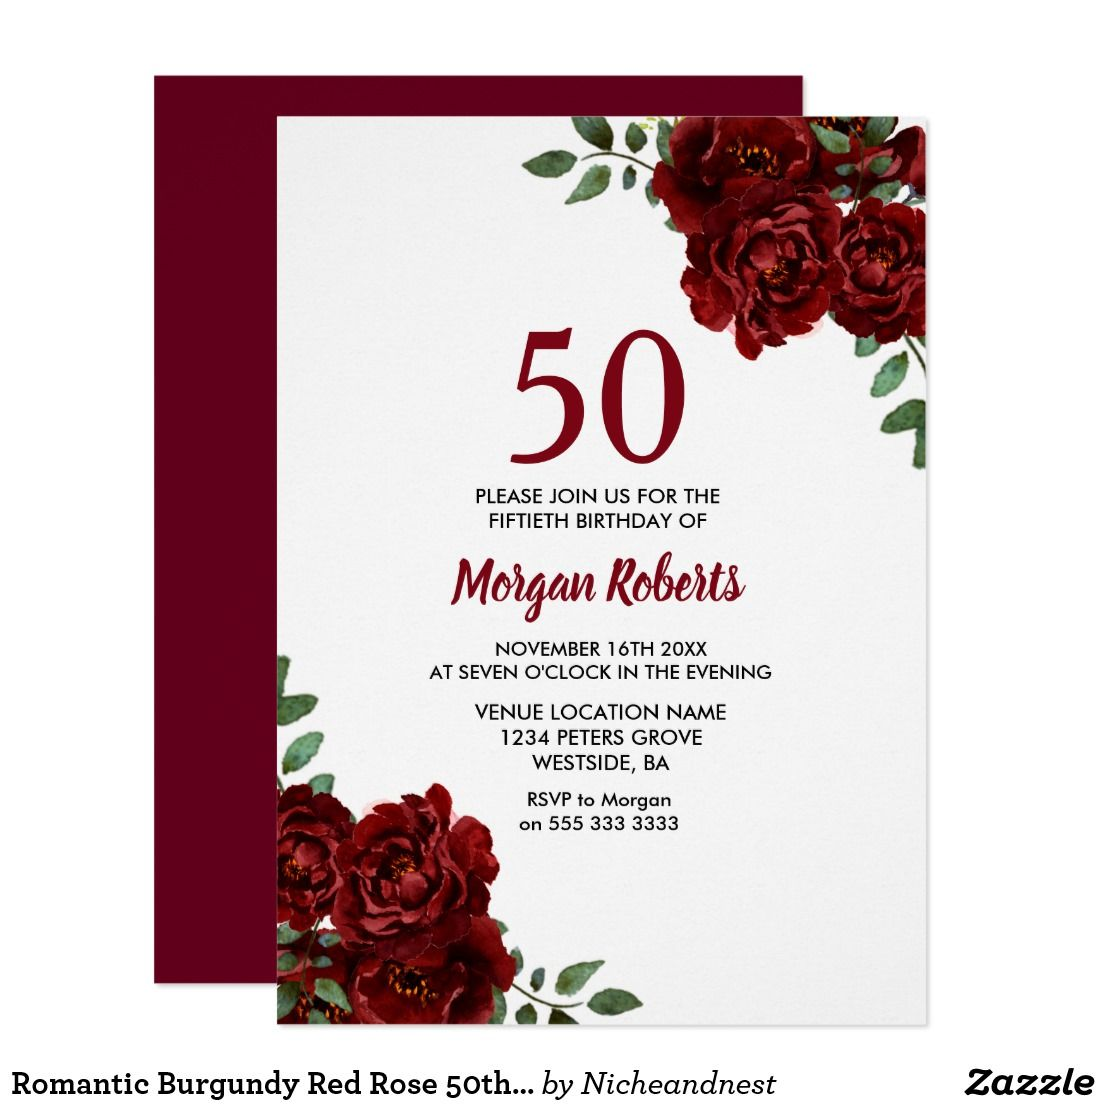 Romantic Burgundy Red Rose 50th Birthday Invite | Party invitations ...